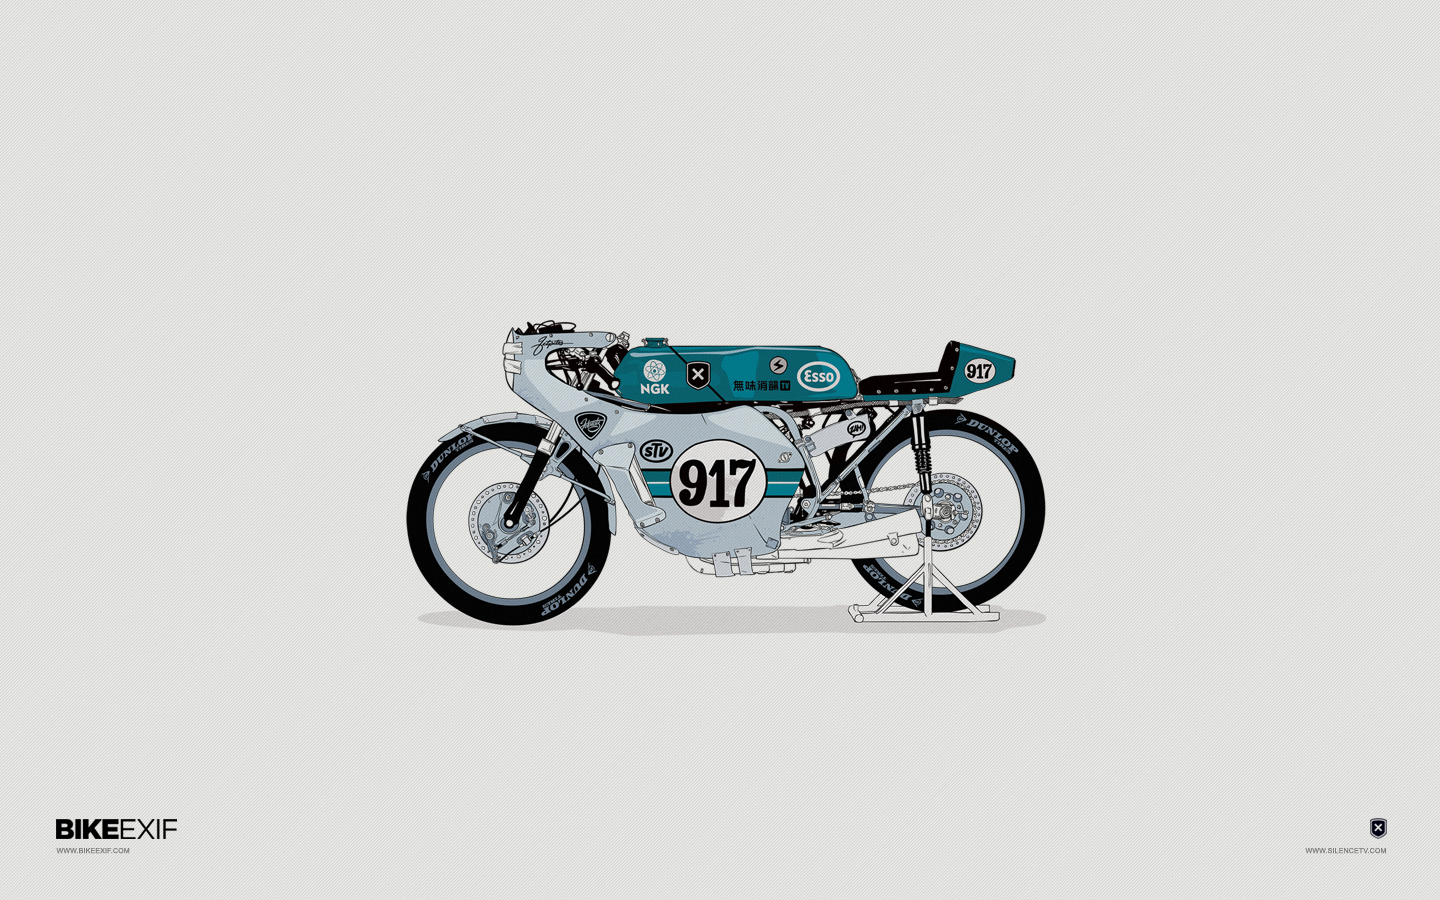 Moto-Mucci: INTERWEB GOODS: bike exif illustrated wallpapers